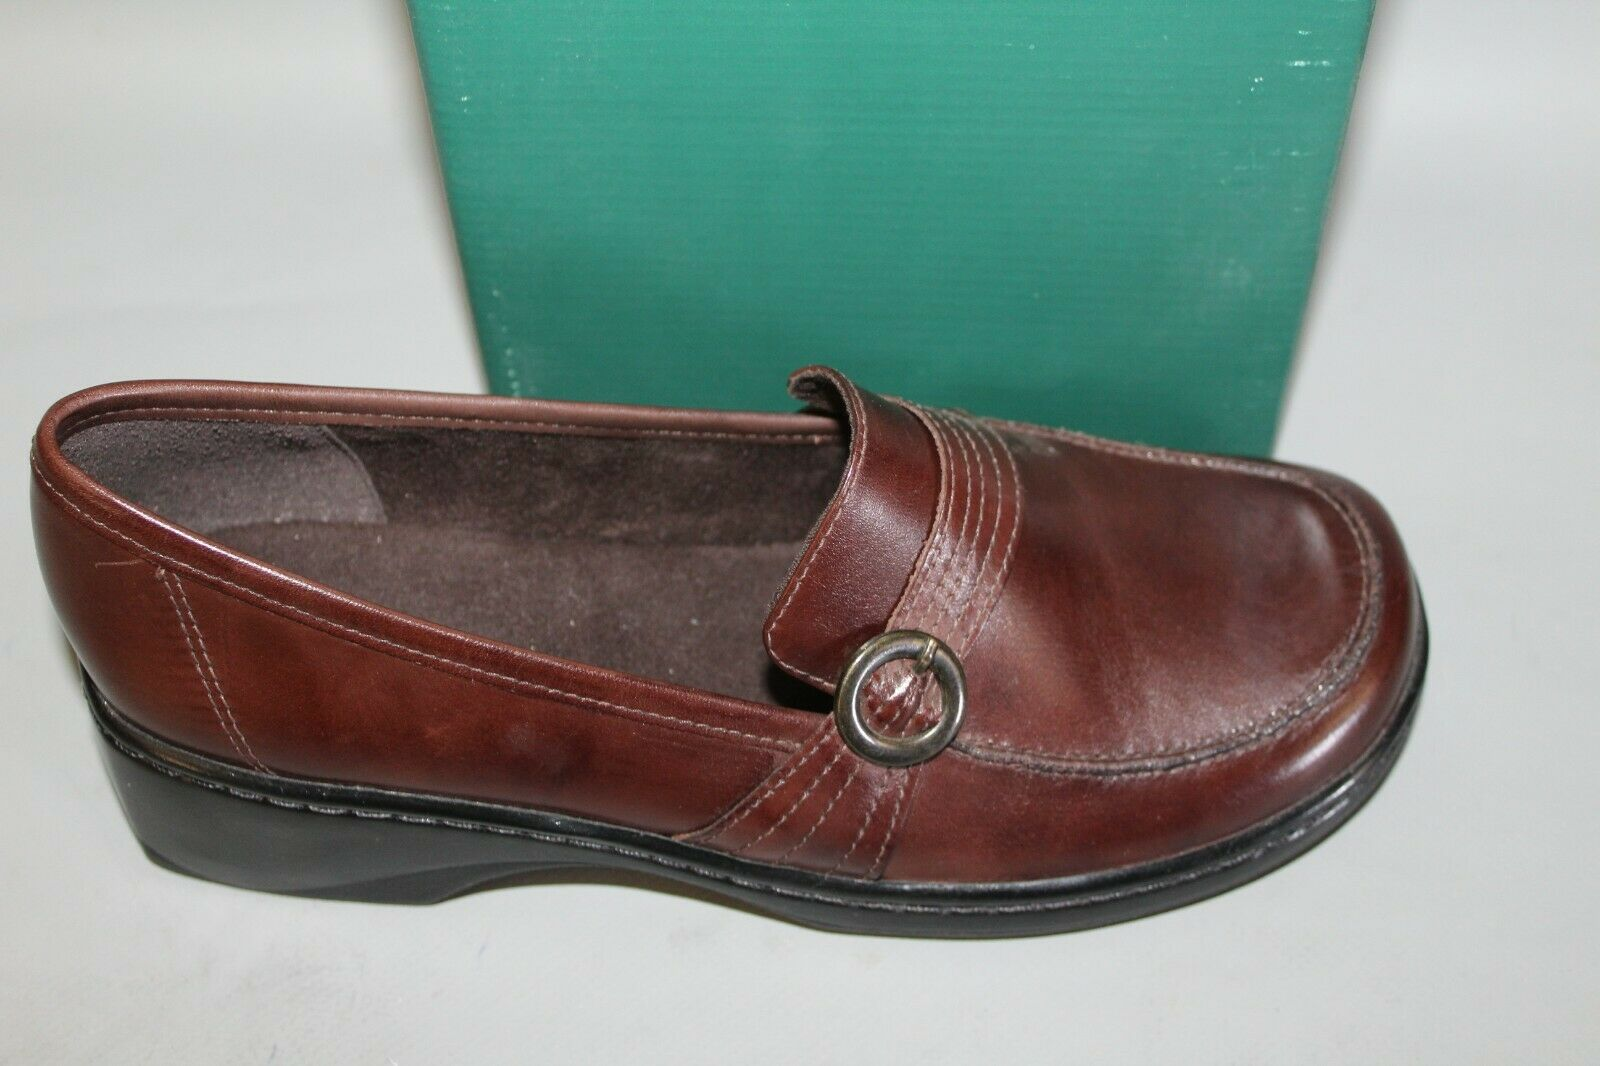 NEW Women's Clarks Ember Size 7 Wide Brown Leather Slip-on Casual shoes